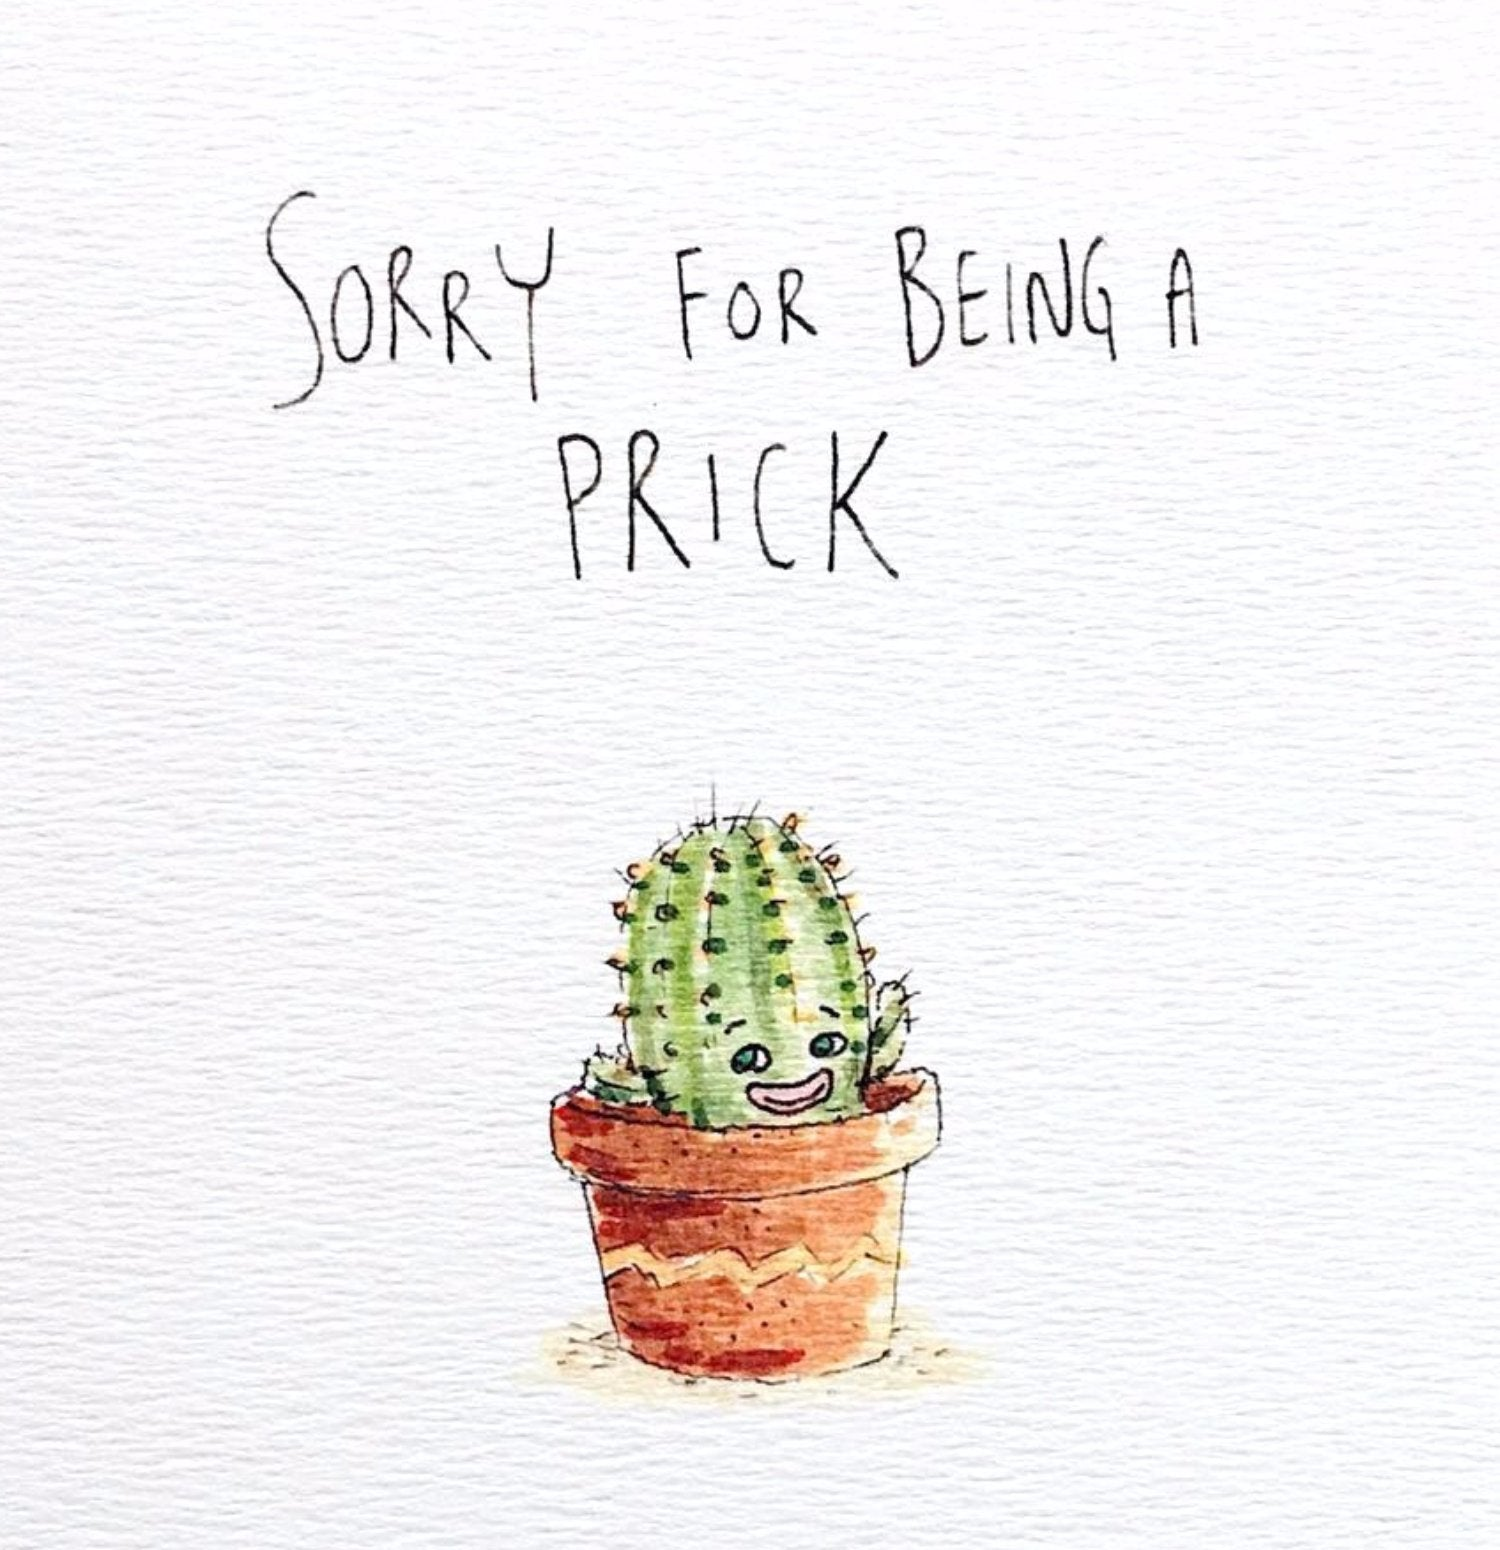 Sorry For Being A Prick - Well Drawn